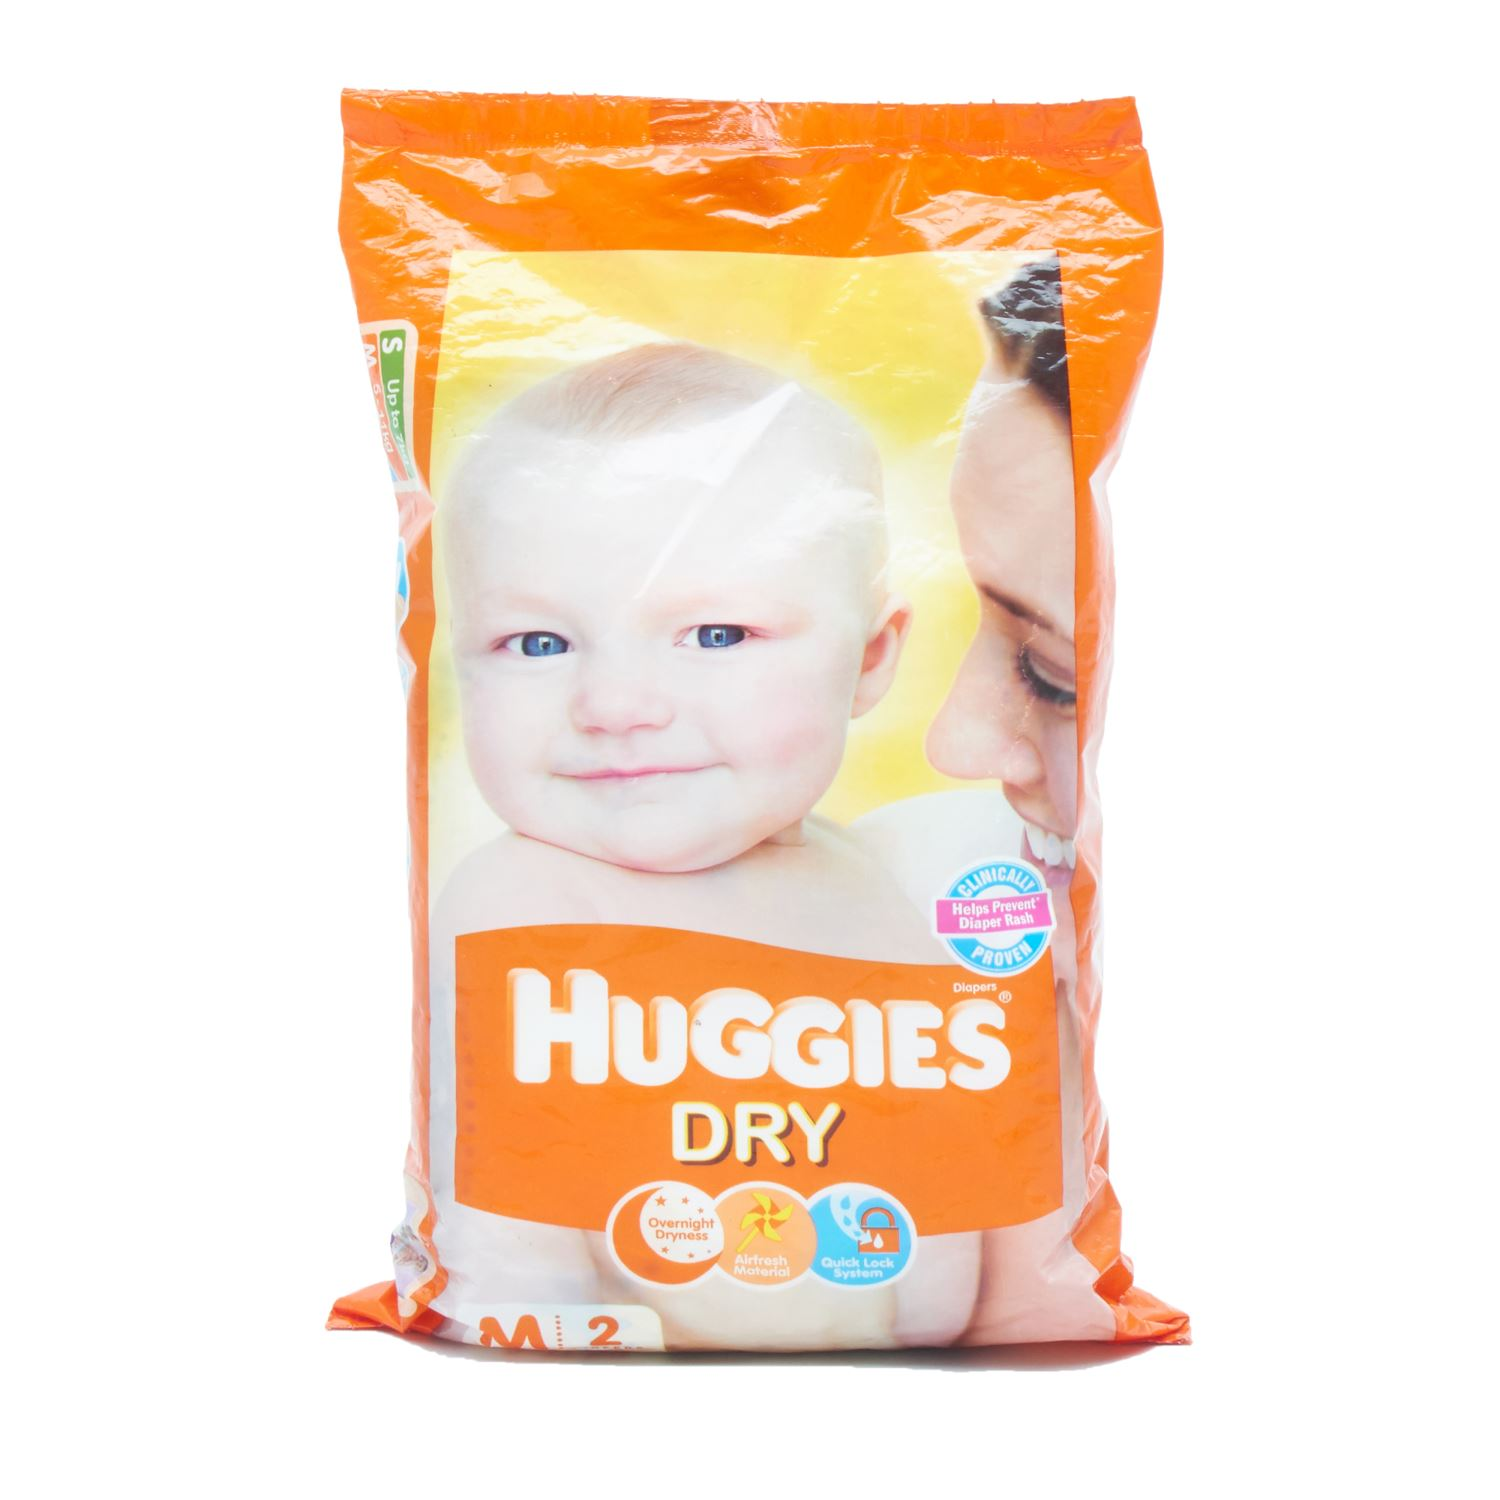 Huggies Dry Diapers Medium - 2 Nos